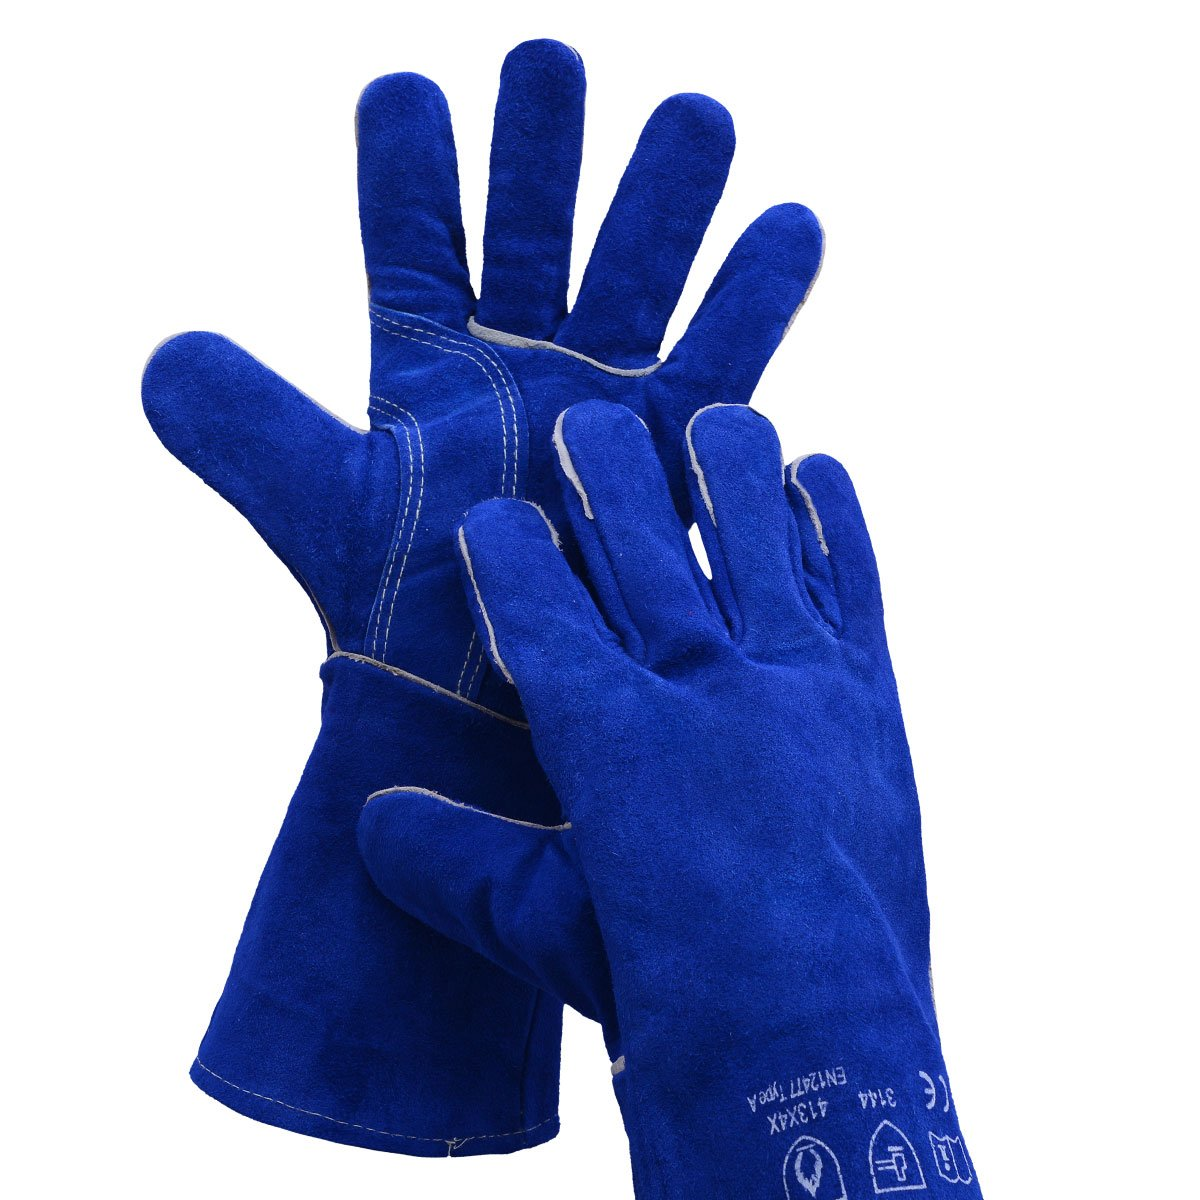 Leather Welding Gloves BOWOO Stitching Heat Resistant Glove for Tig/Mig/Stick/Gardening 14IN,1 pair (Blue)